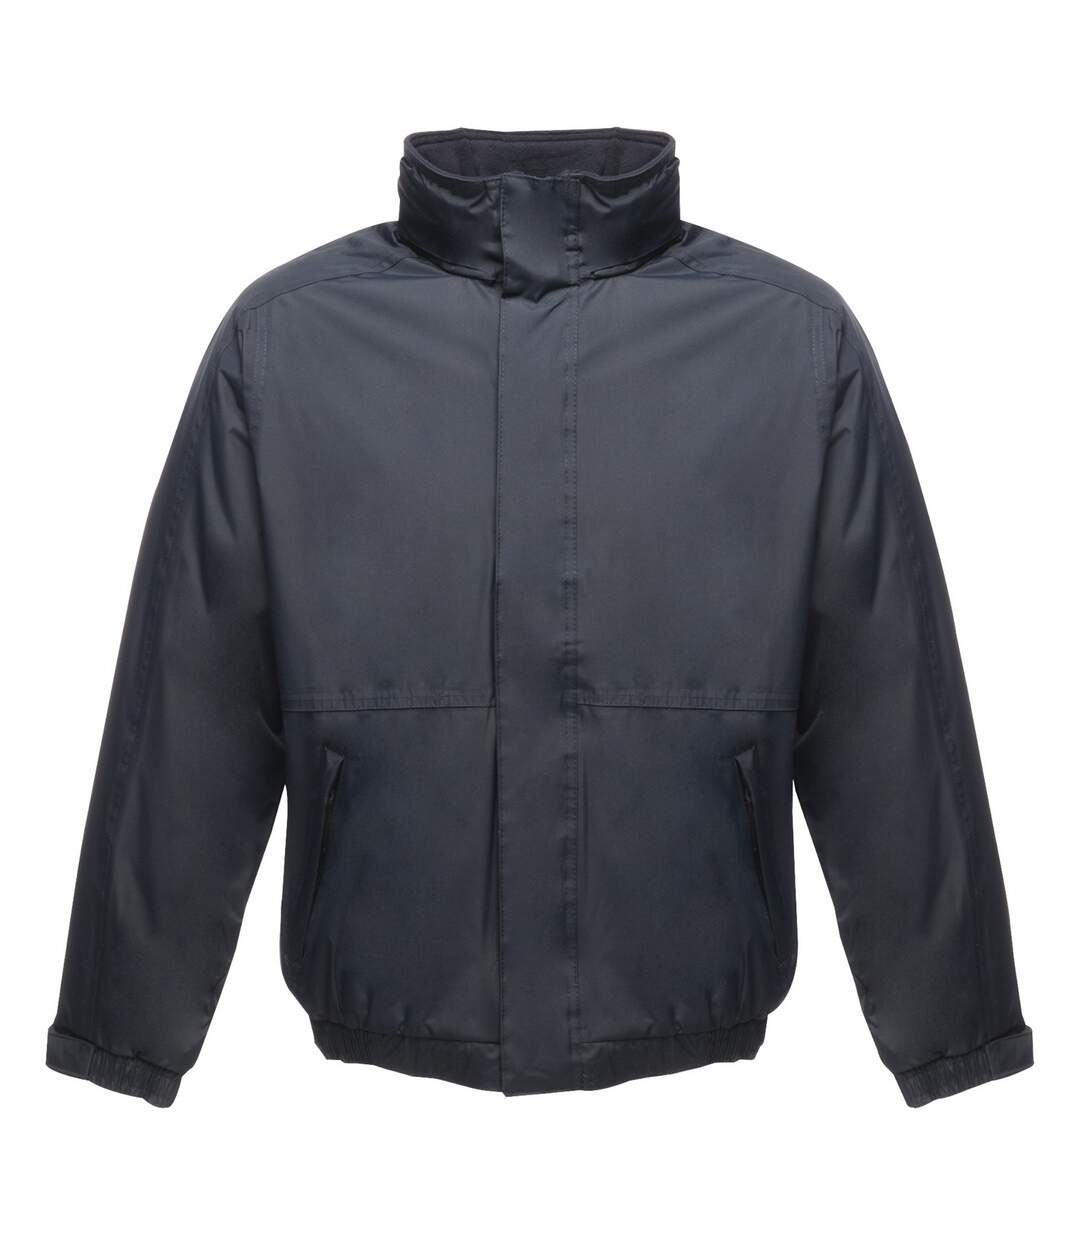 Regatta Dover Waterproof Windproof Jacket (Thermo-Guard Insulation) (Classic Red/Navy) - UTRG1425